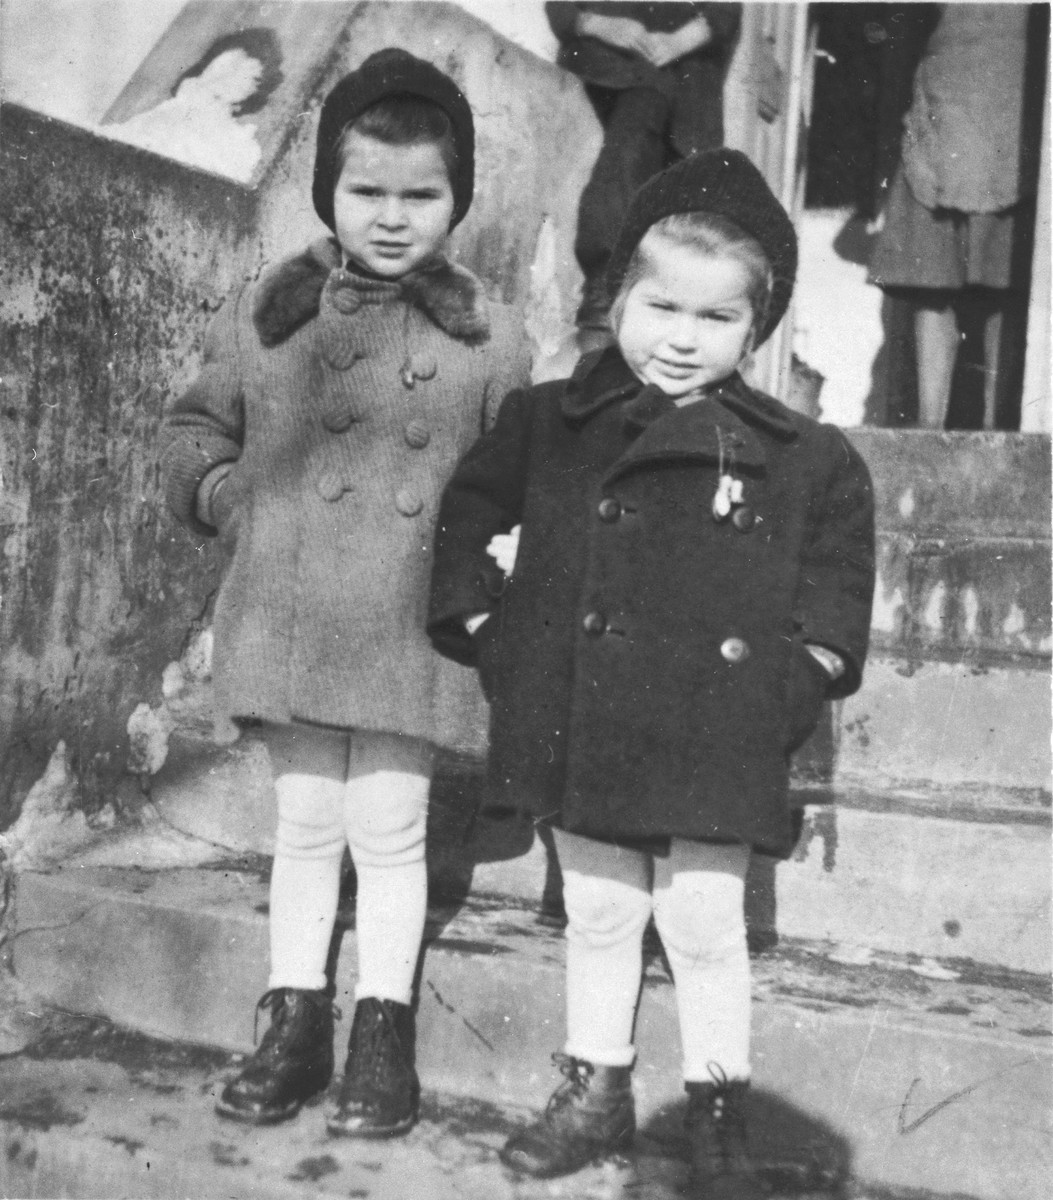 Two young Jewish sisters pose on the steps of their home in Cop.  Pictured are Renate (left) and Sylvia Schonberg.